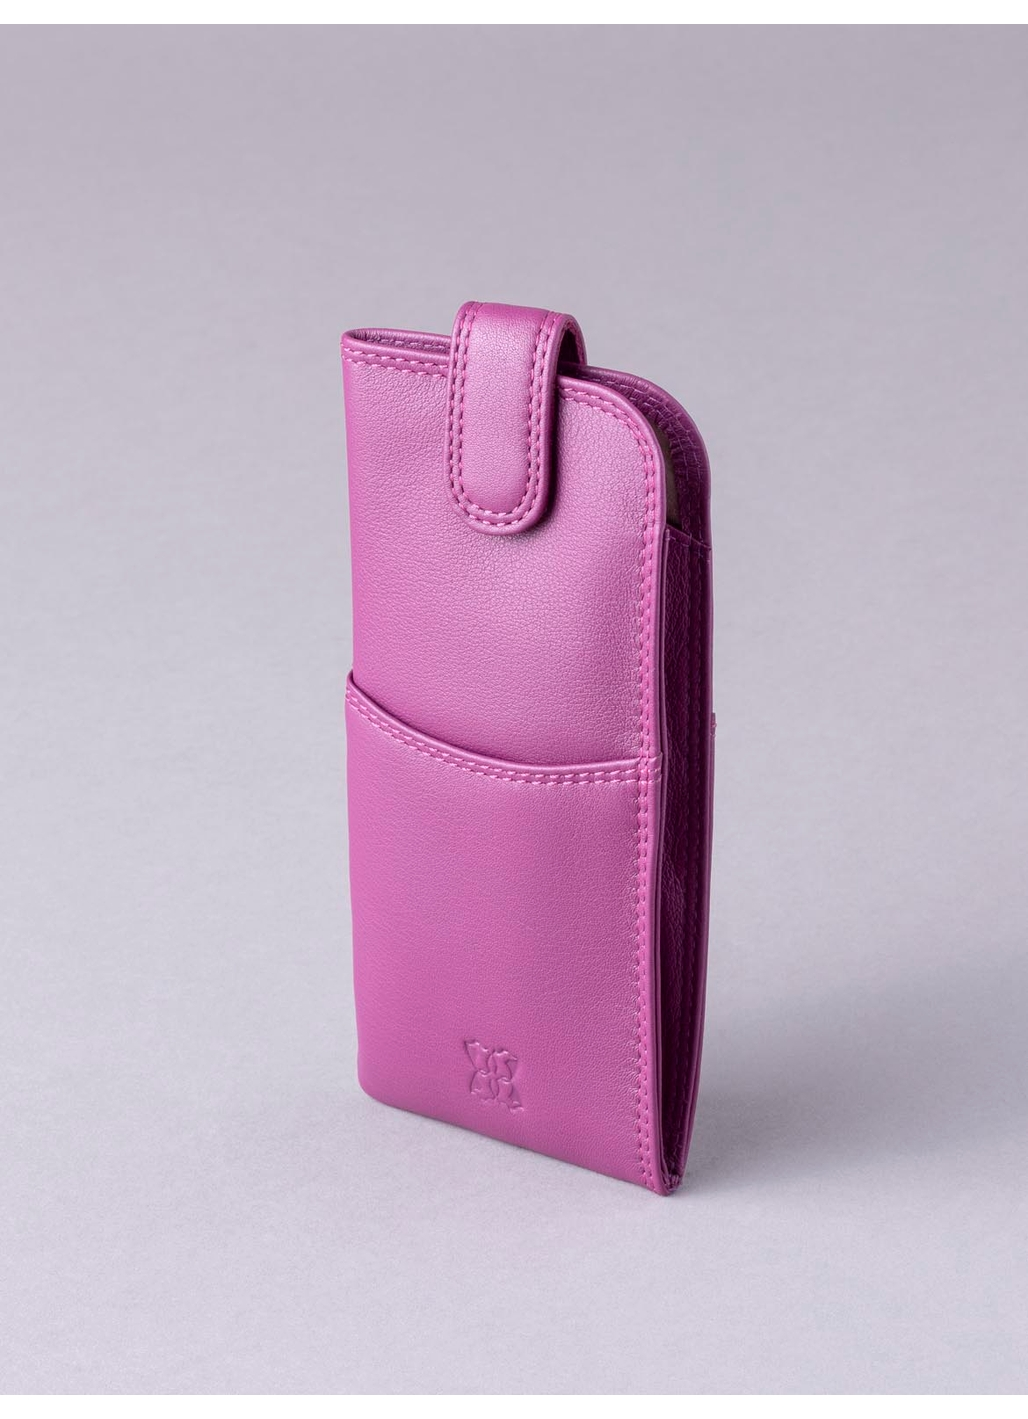 Leather Tab Glasses Case in Fuchsia Pink